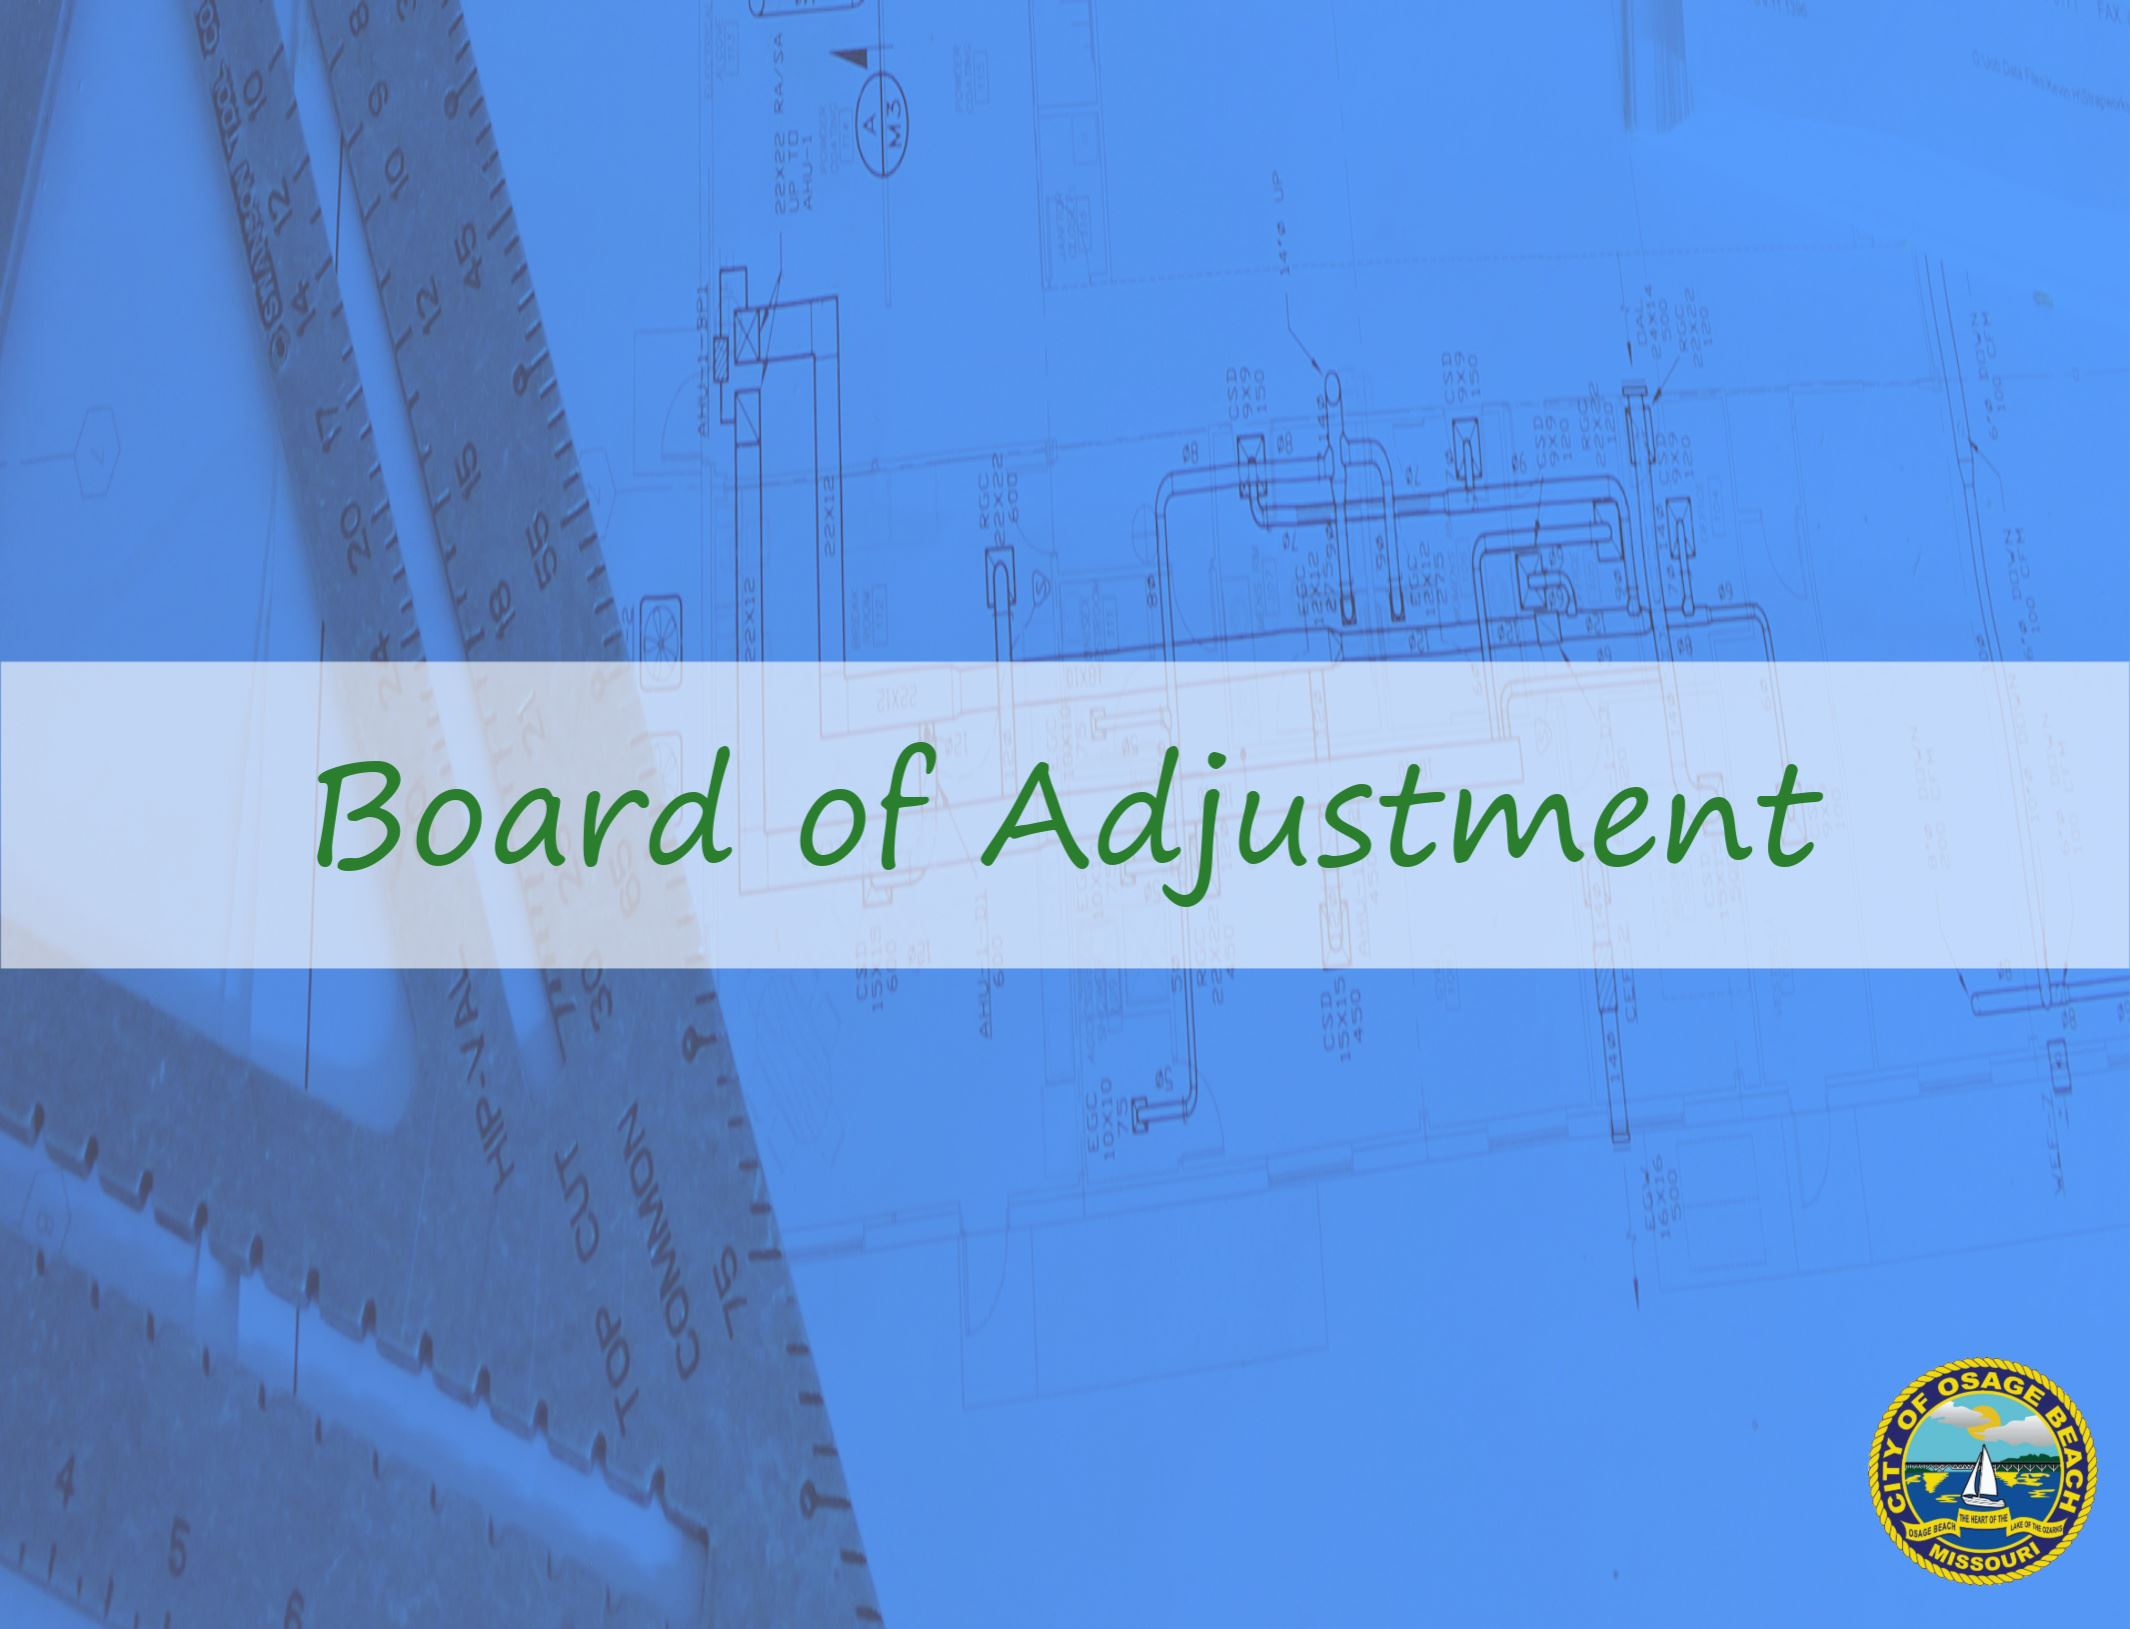 Board of Zoning Adjustment Sign